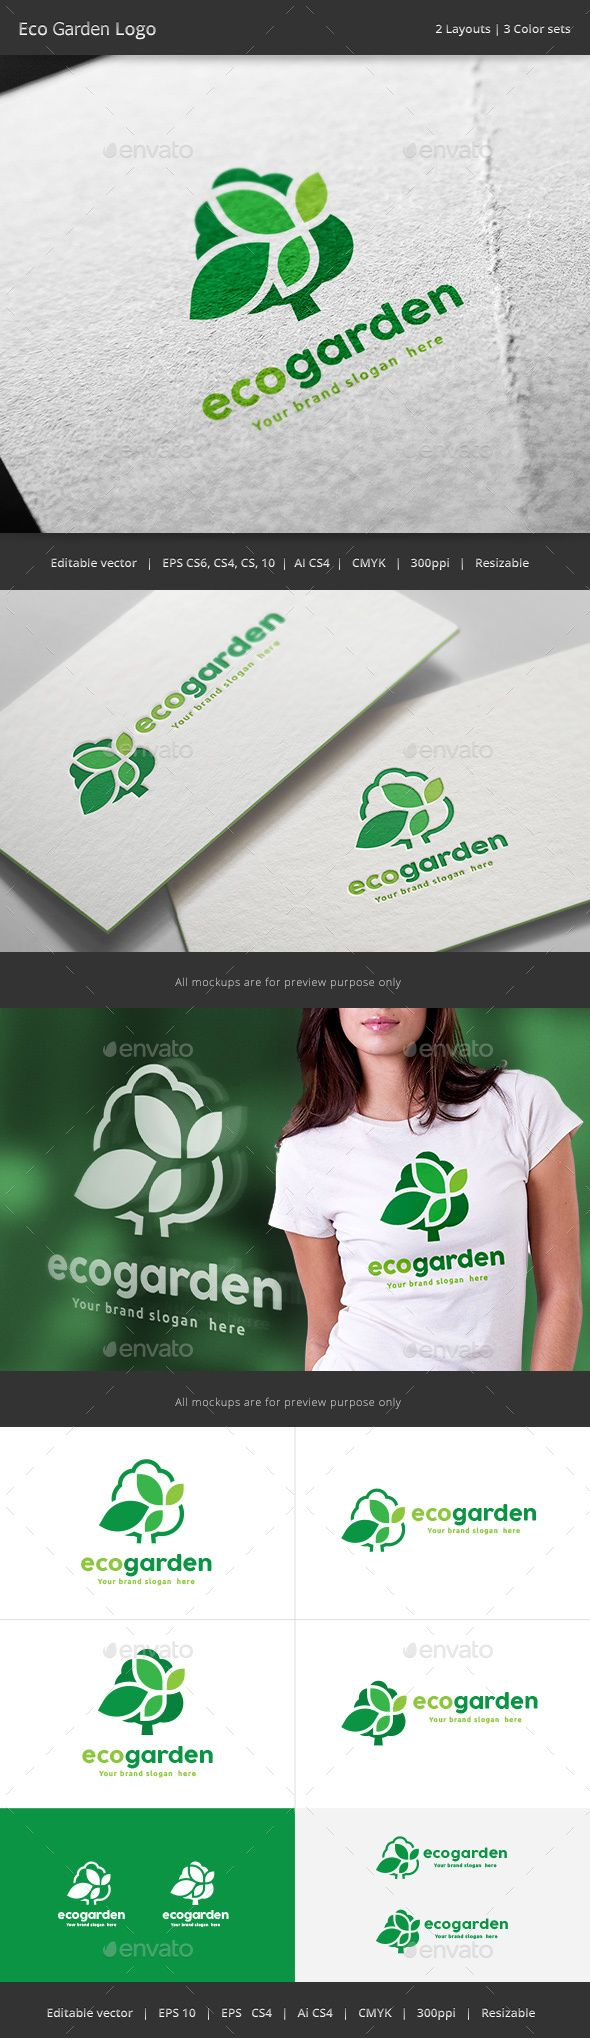 Below are two different file formats of the superman logo in a beveled eco garden download